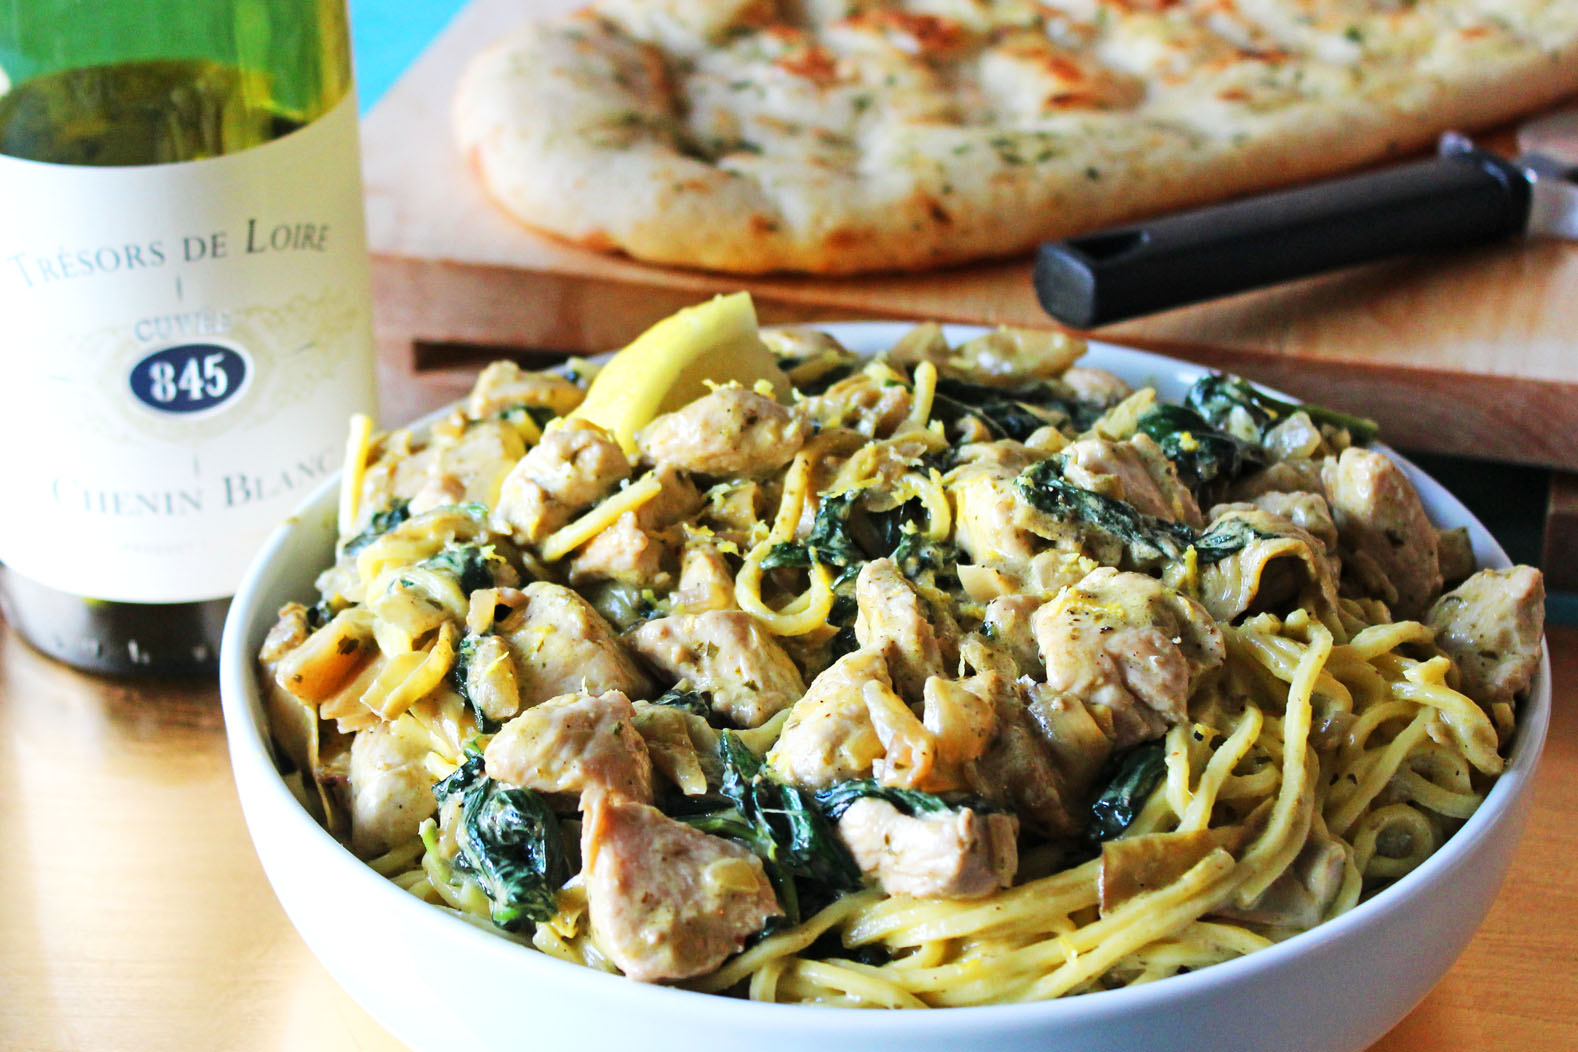 Spaghetti with Creamy Chicken, Spinach and Artichoke Sauce